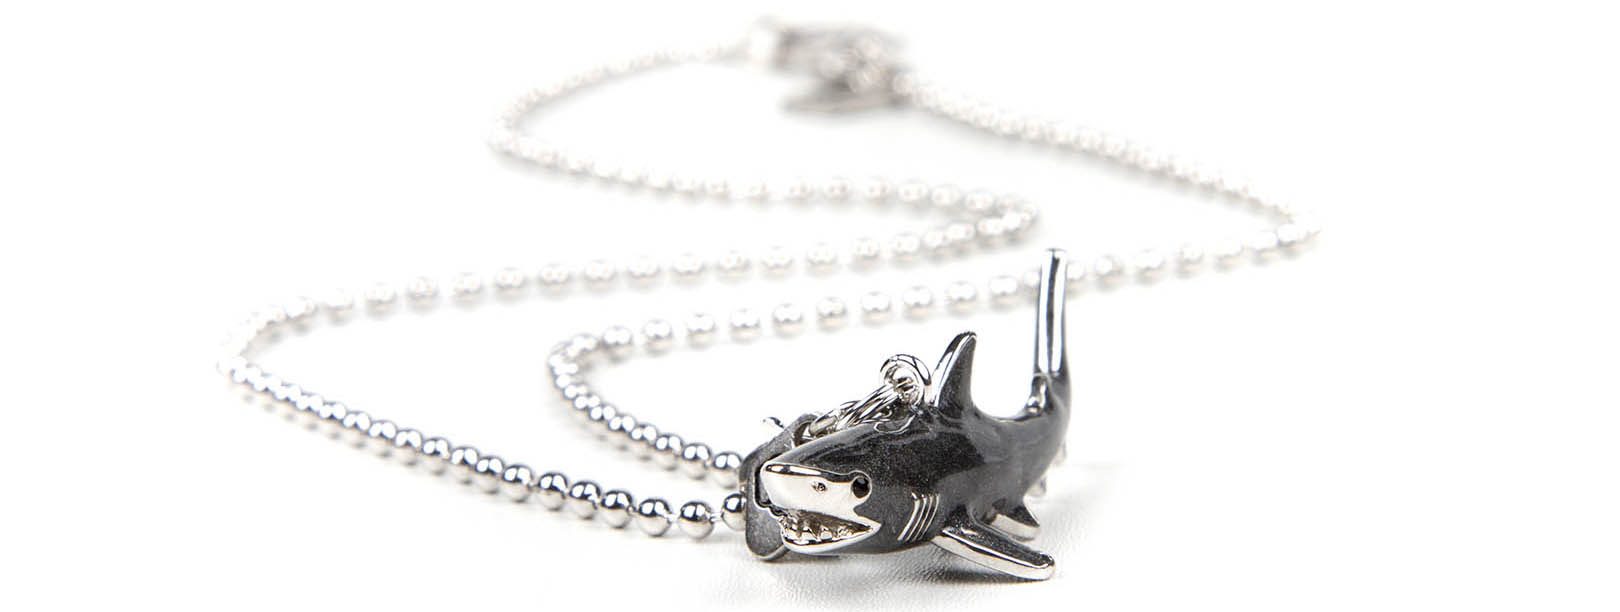 One of ko-ko-no's favourites: the Shark for Save The Ocean.